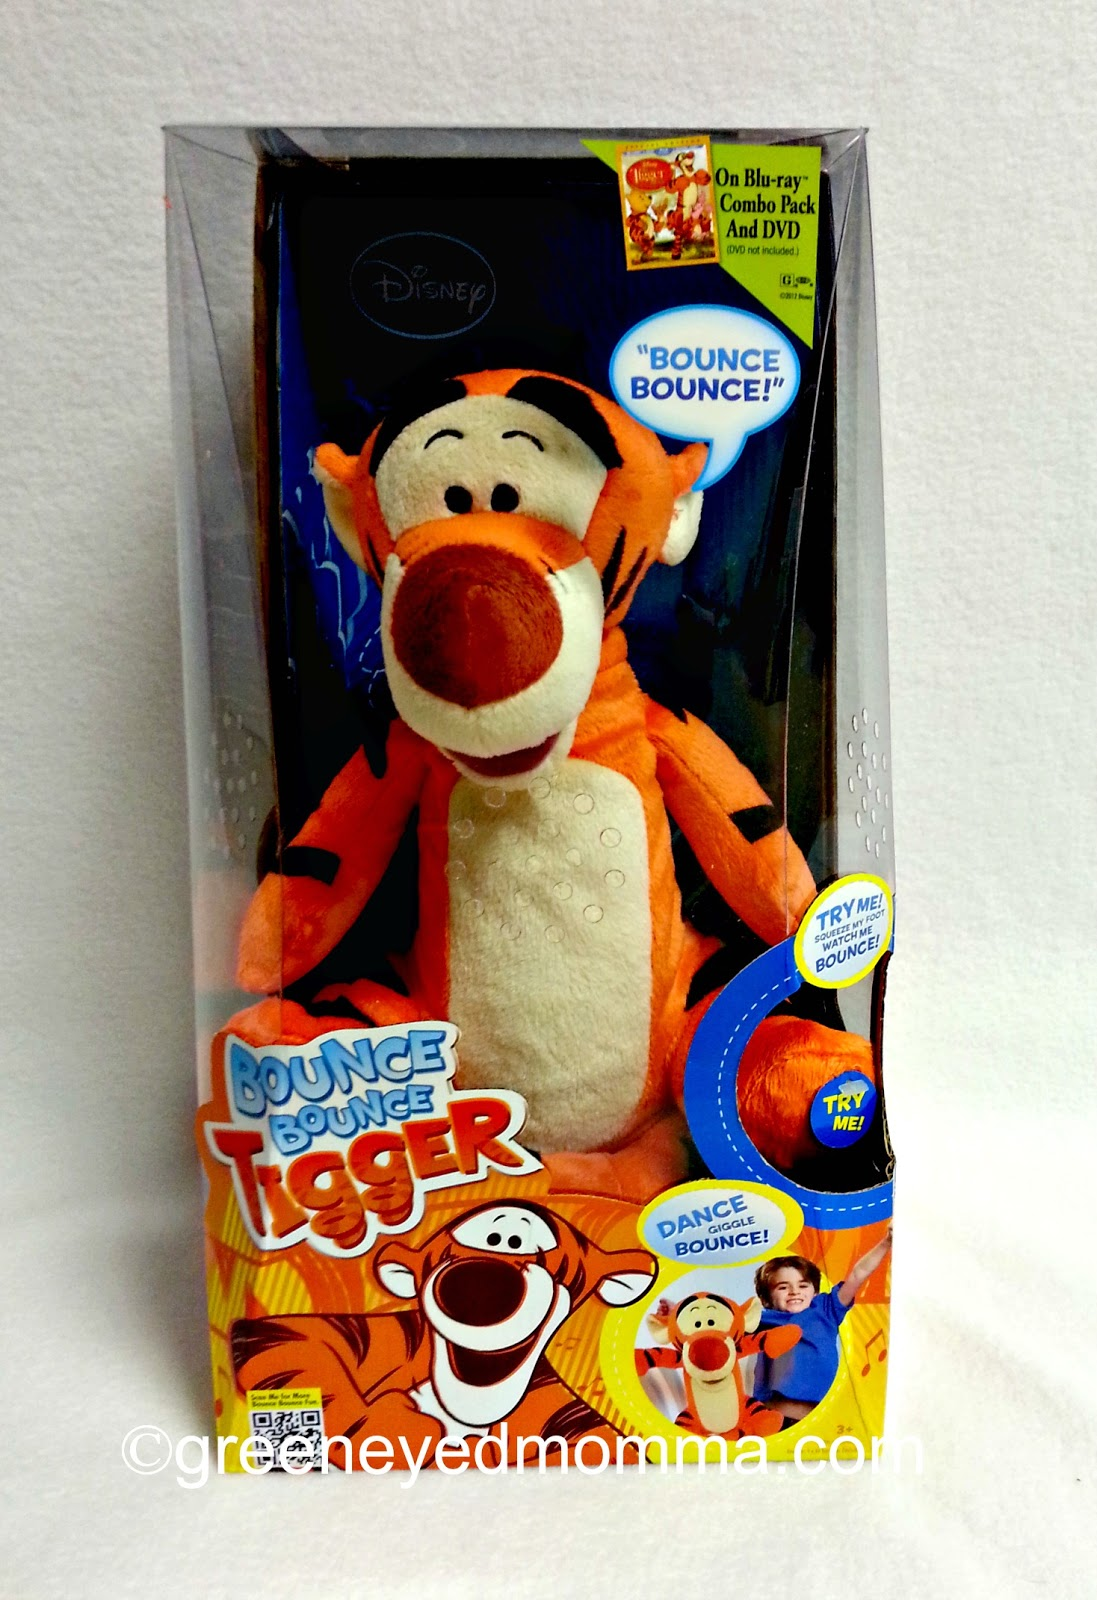 Bounce Bounce Tigger Bounce Bounce Tigger is Plush